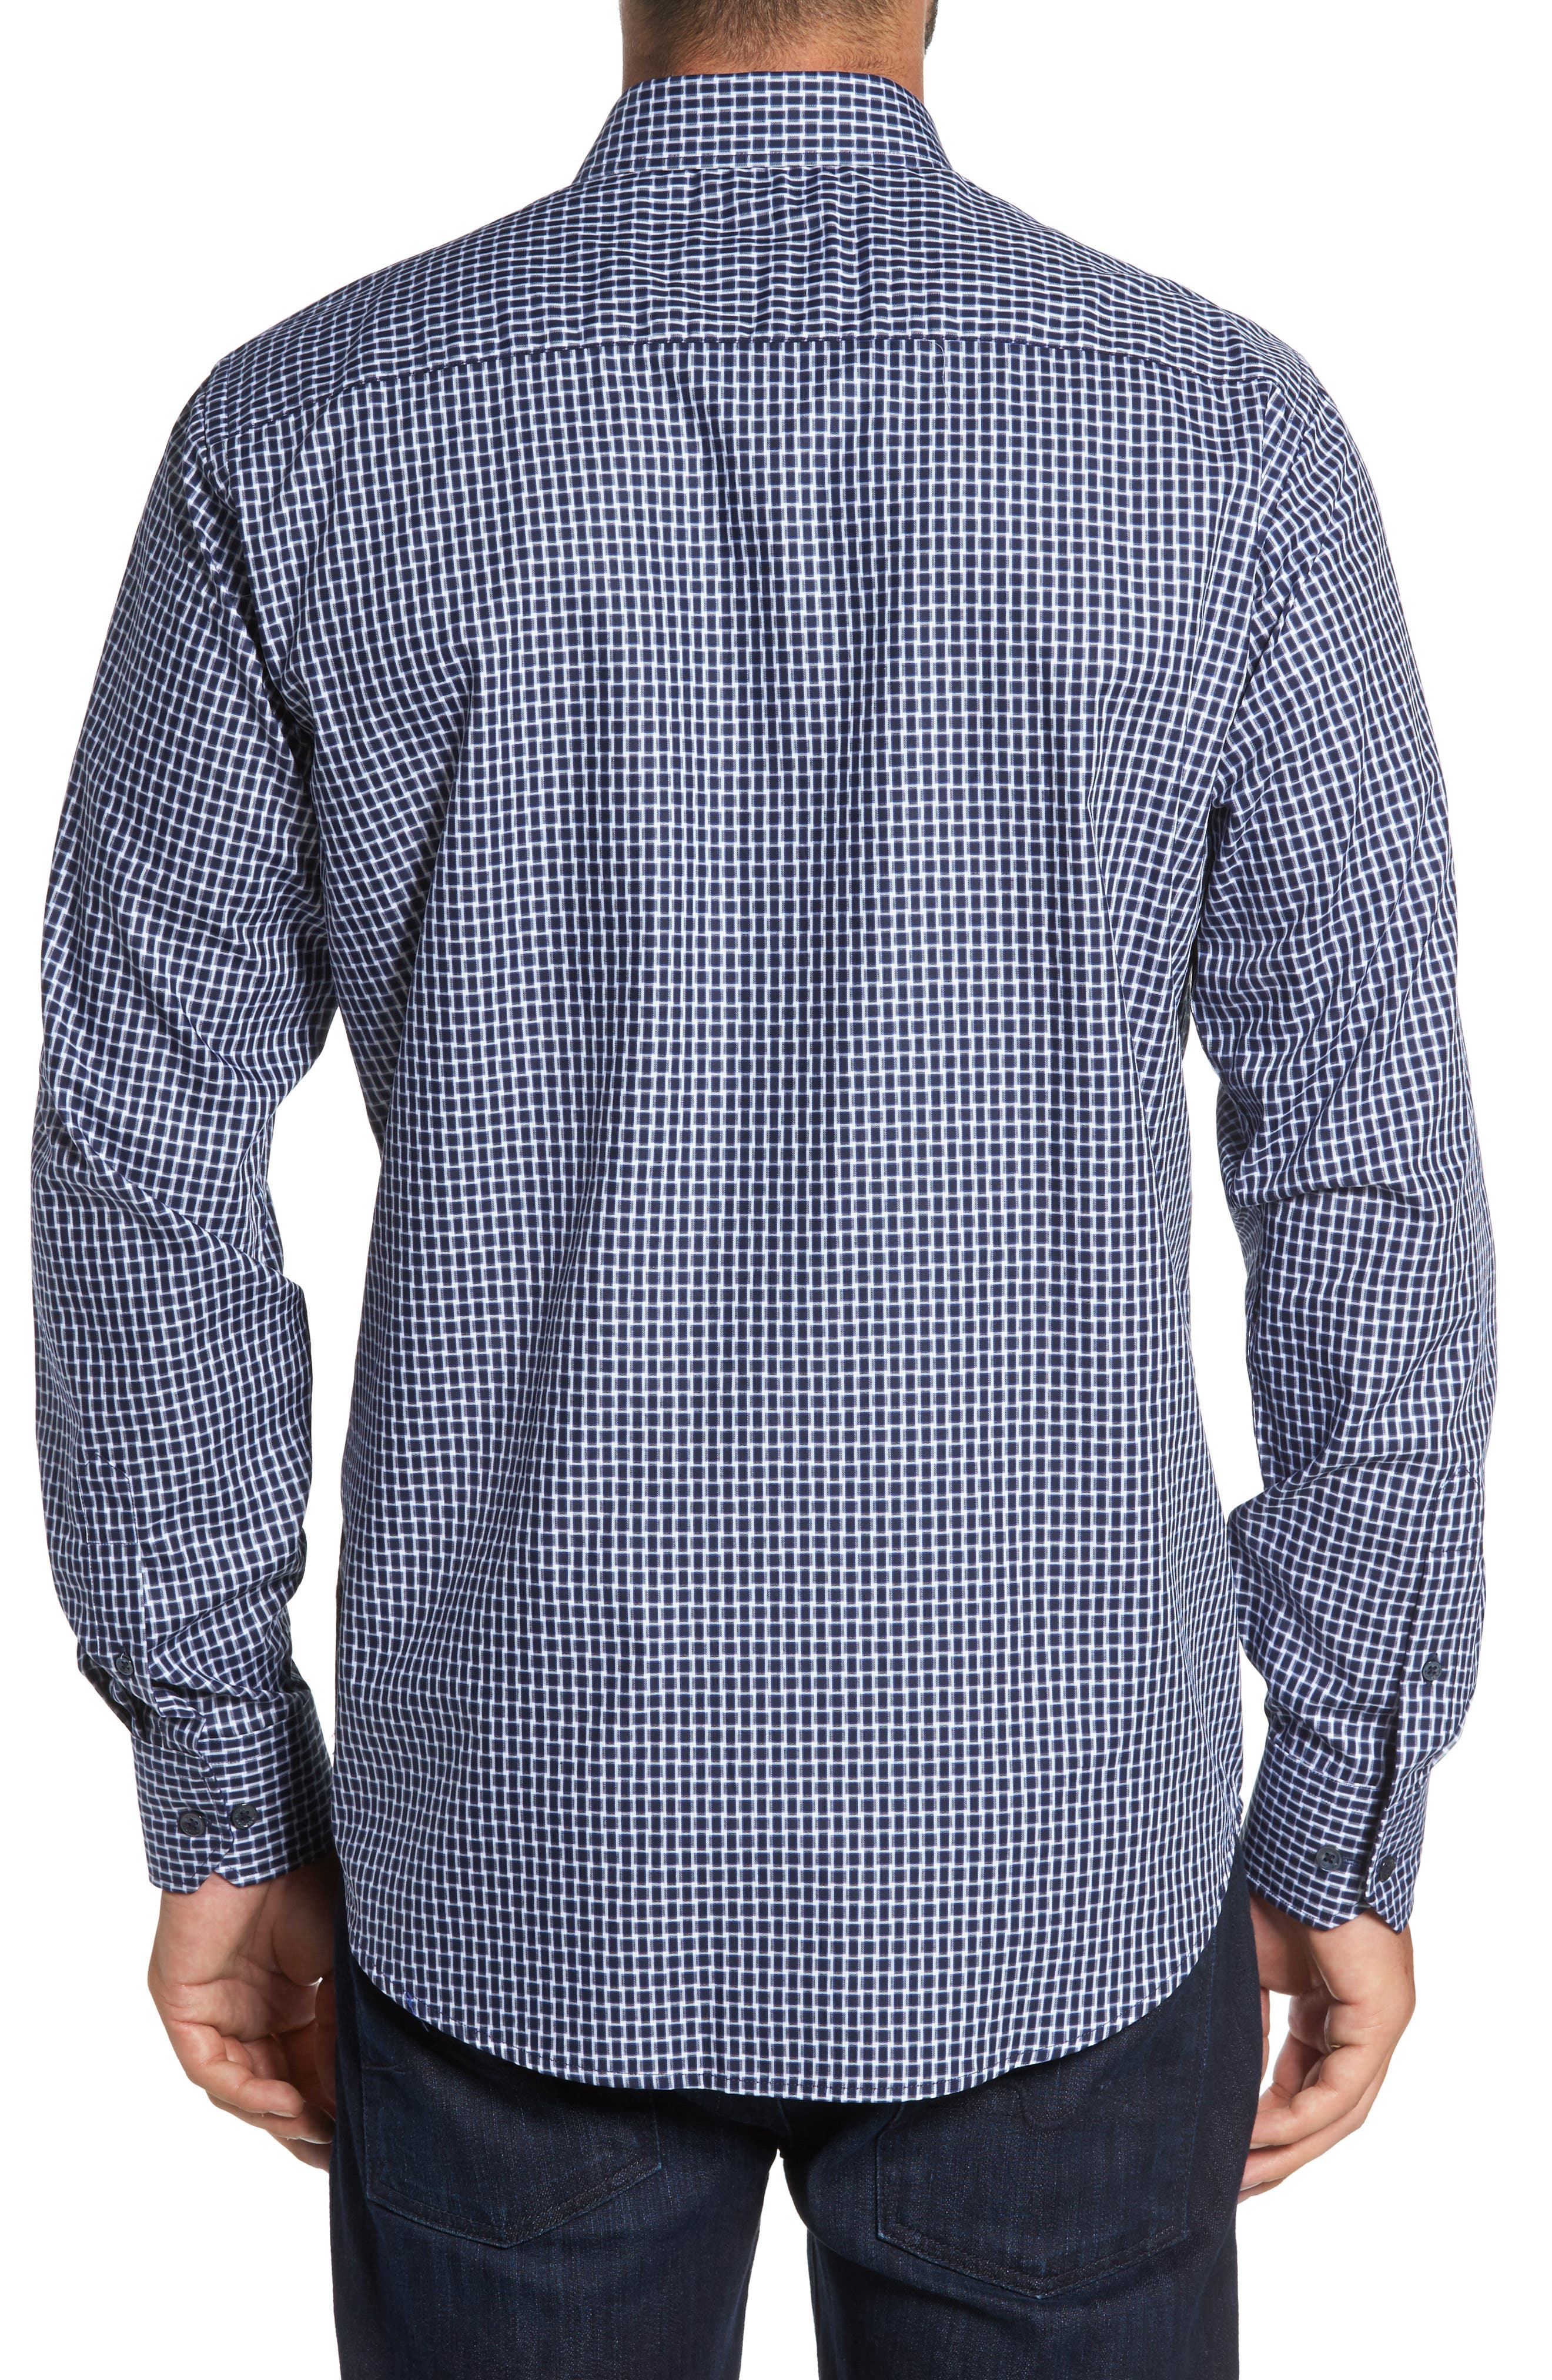 Classic Fit Geo Patterned Sport Shirt,                             Alternate thumbnail 2, color,                             411